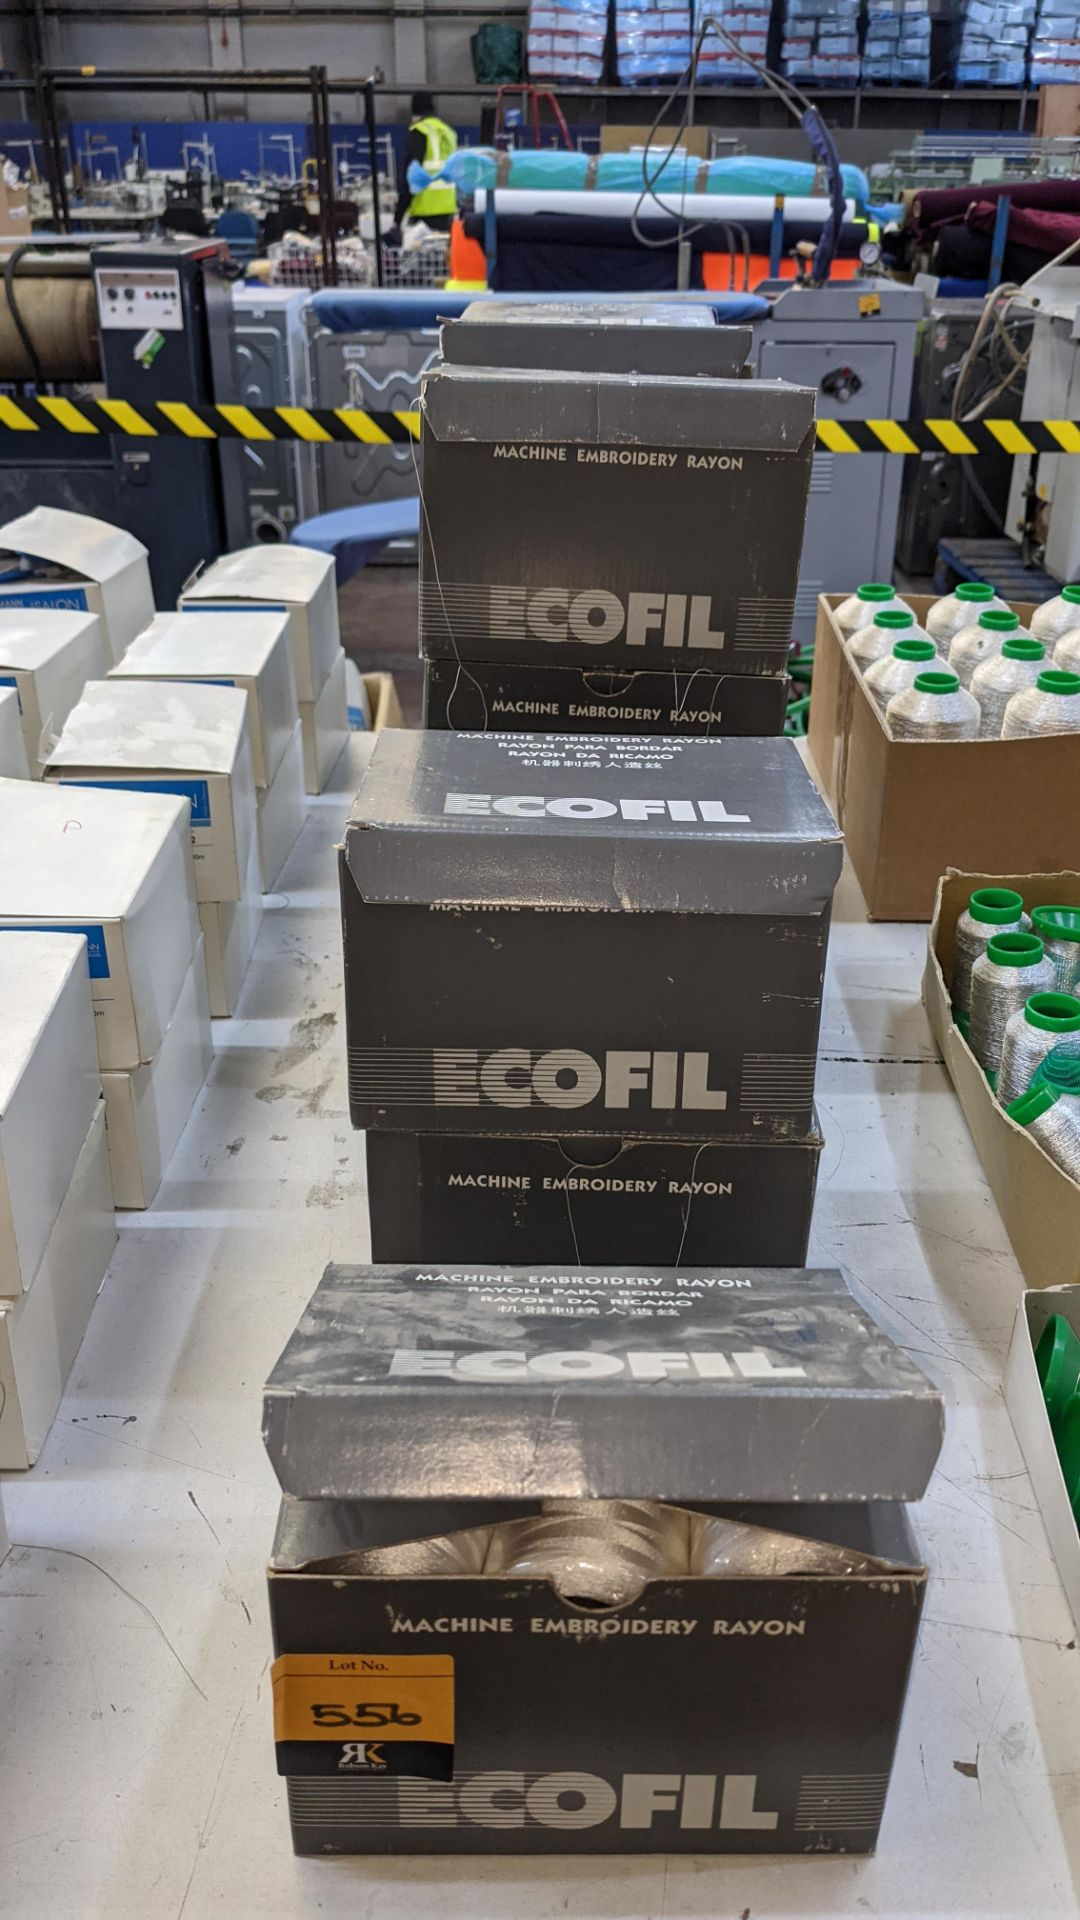 12 boxes of Ecofil rayon machine embroidery thread, all in white - Image 2 of 8